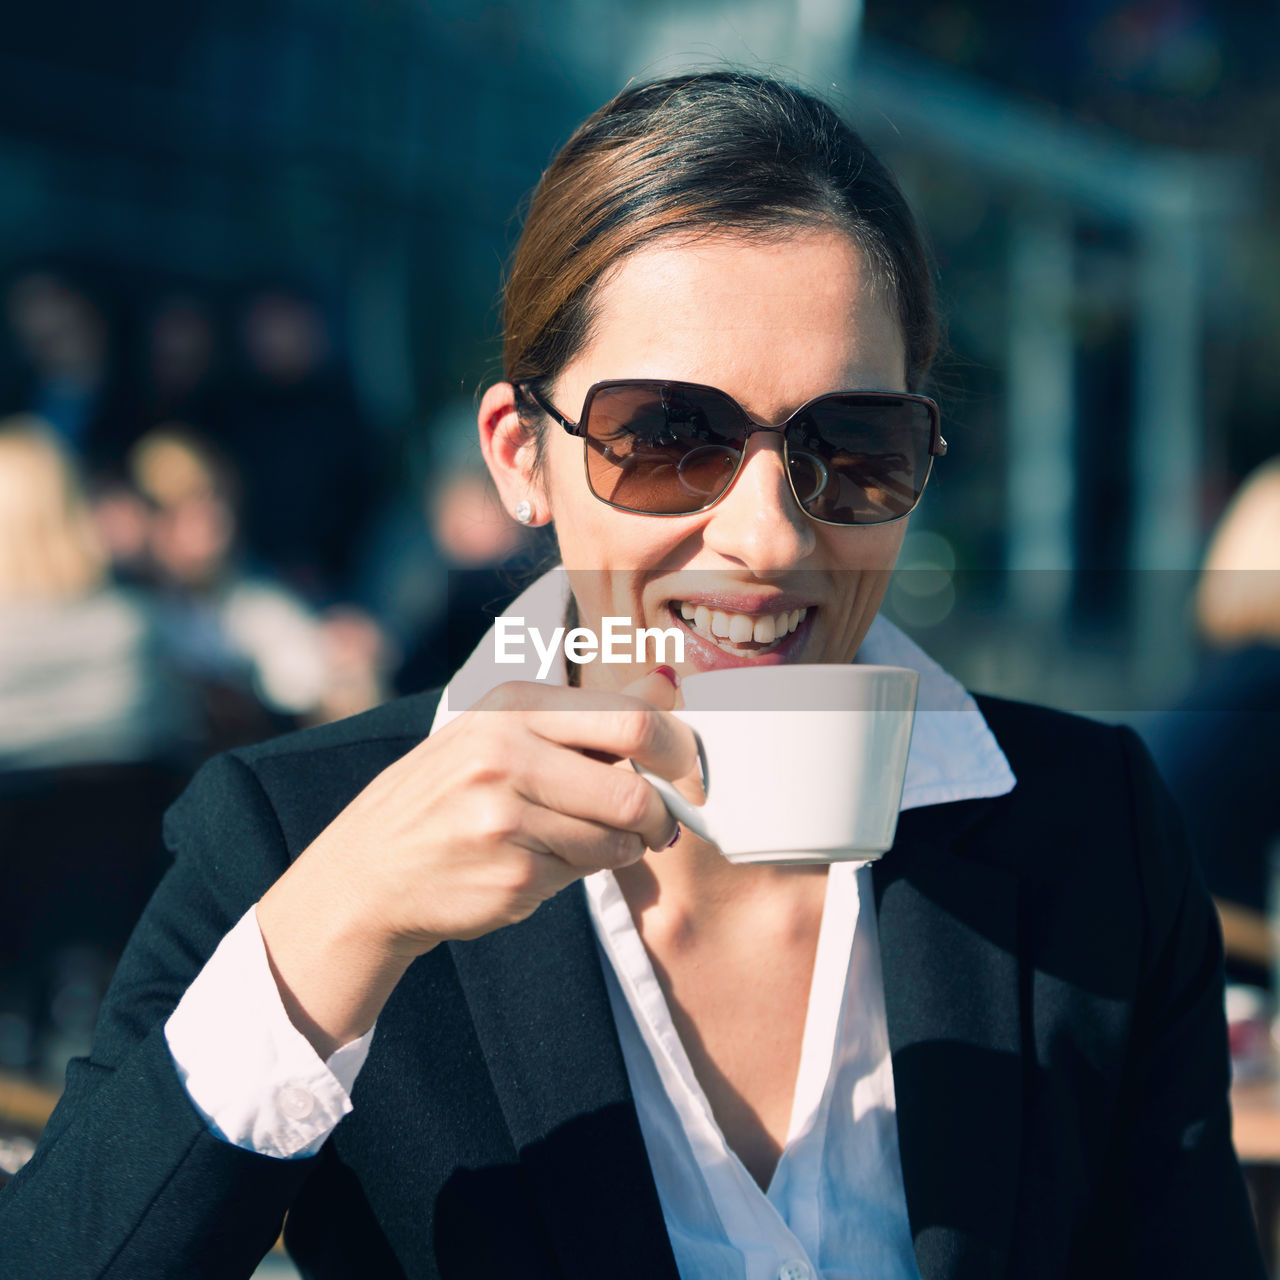 Smiling businesswoman drinking coffee while sitting at sidewalk cafe